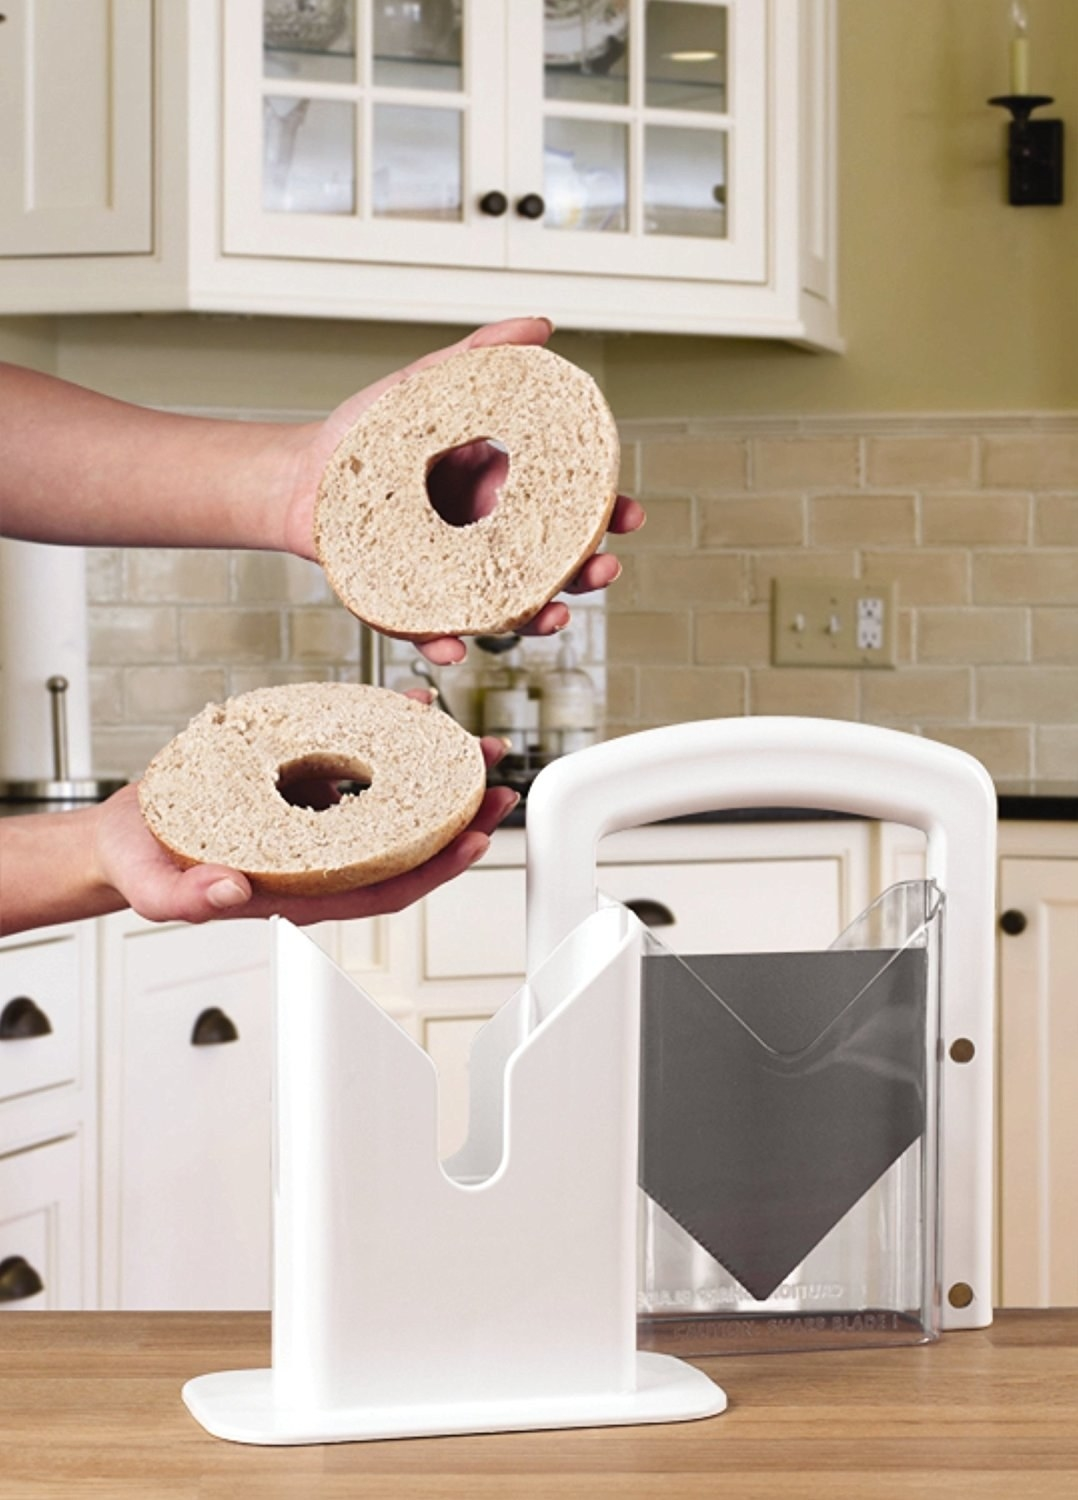 person holding clean-cut bagel after using bagel slicer to evenly slice it